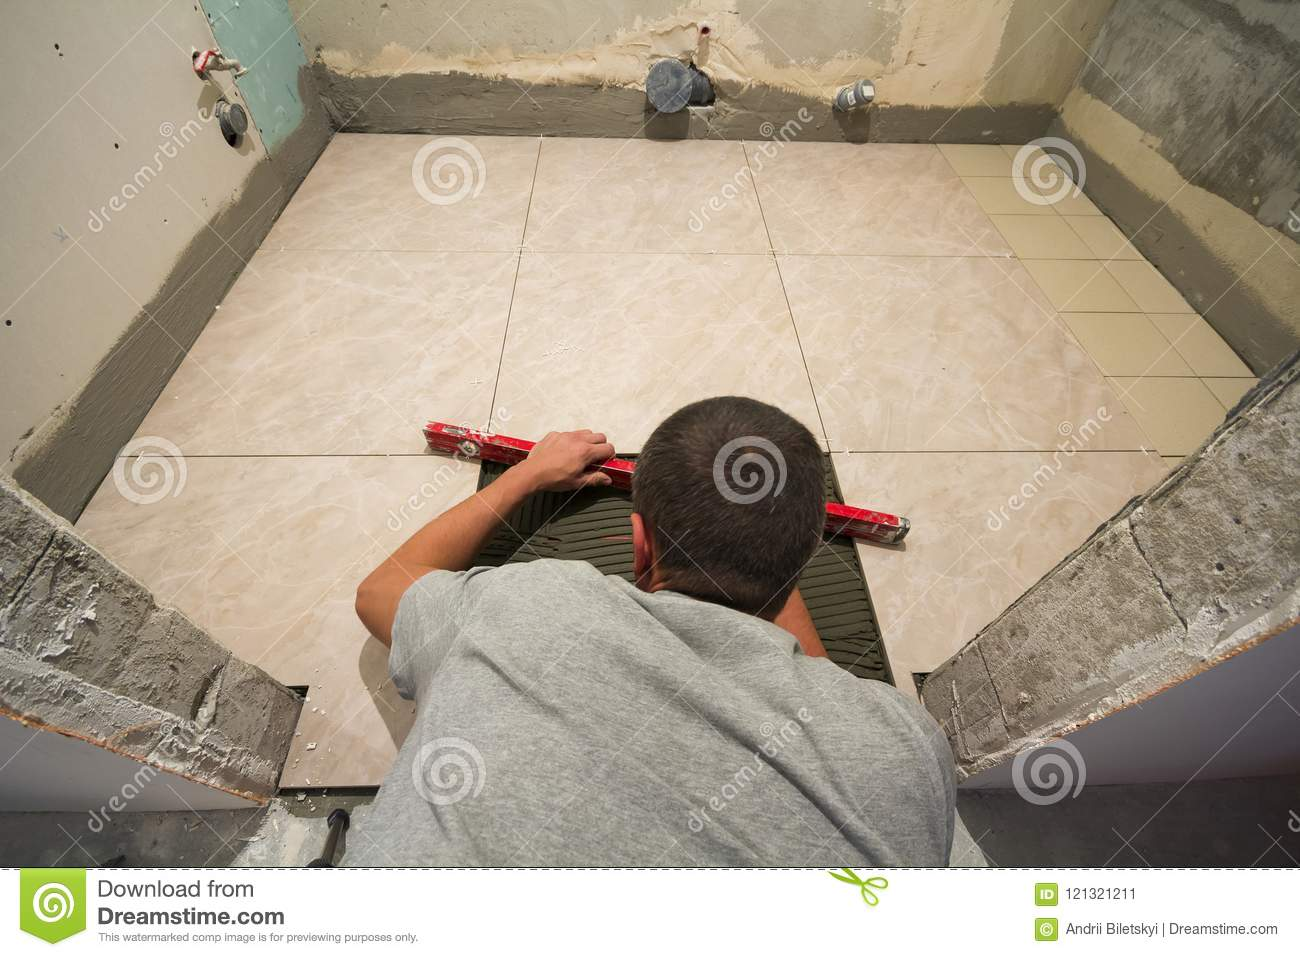 Home Tiles Improvement Handyman With Level Laying Down Tile Floor